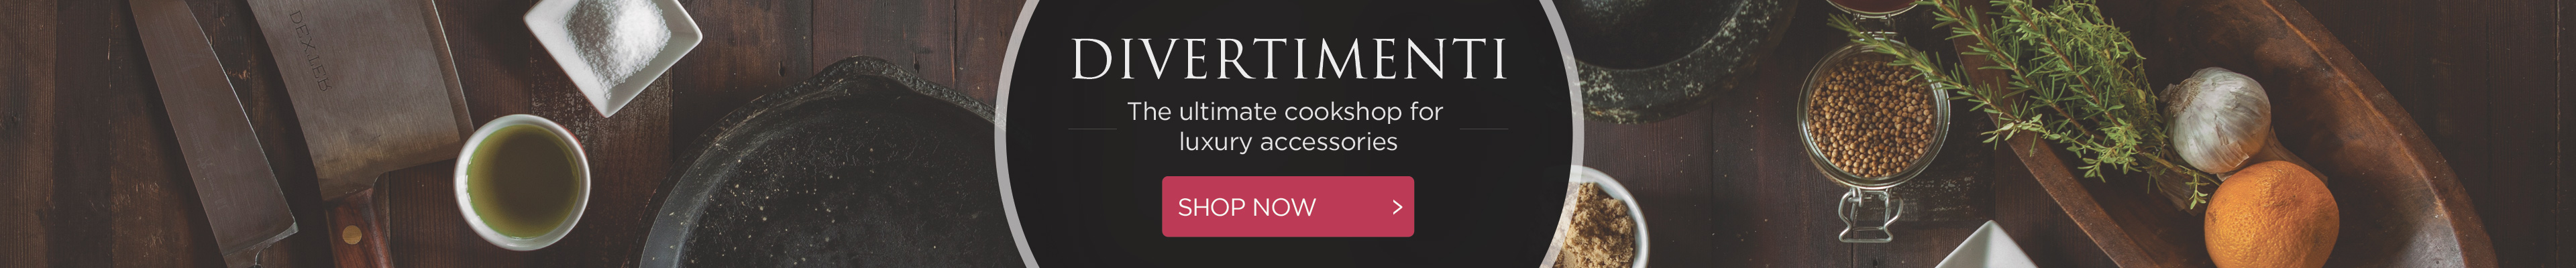 Find great kitchen utensils, cookware and bakeware at the official divertimenti store